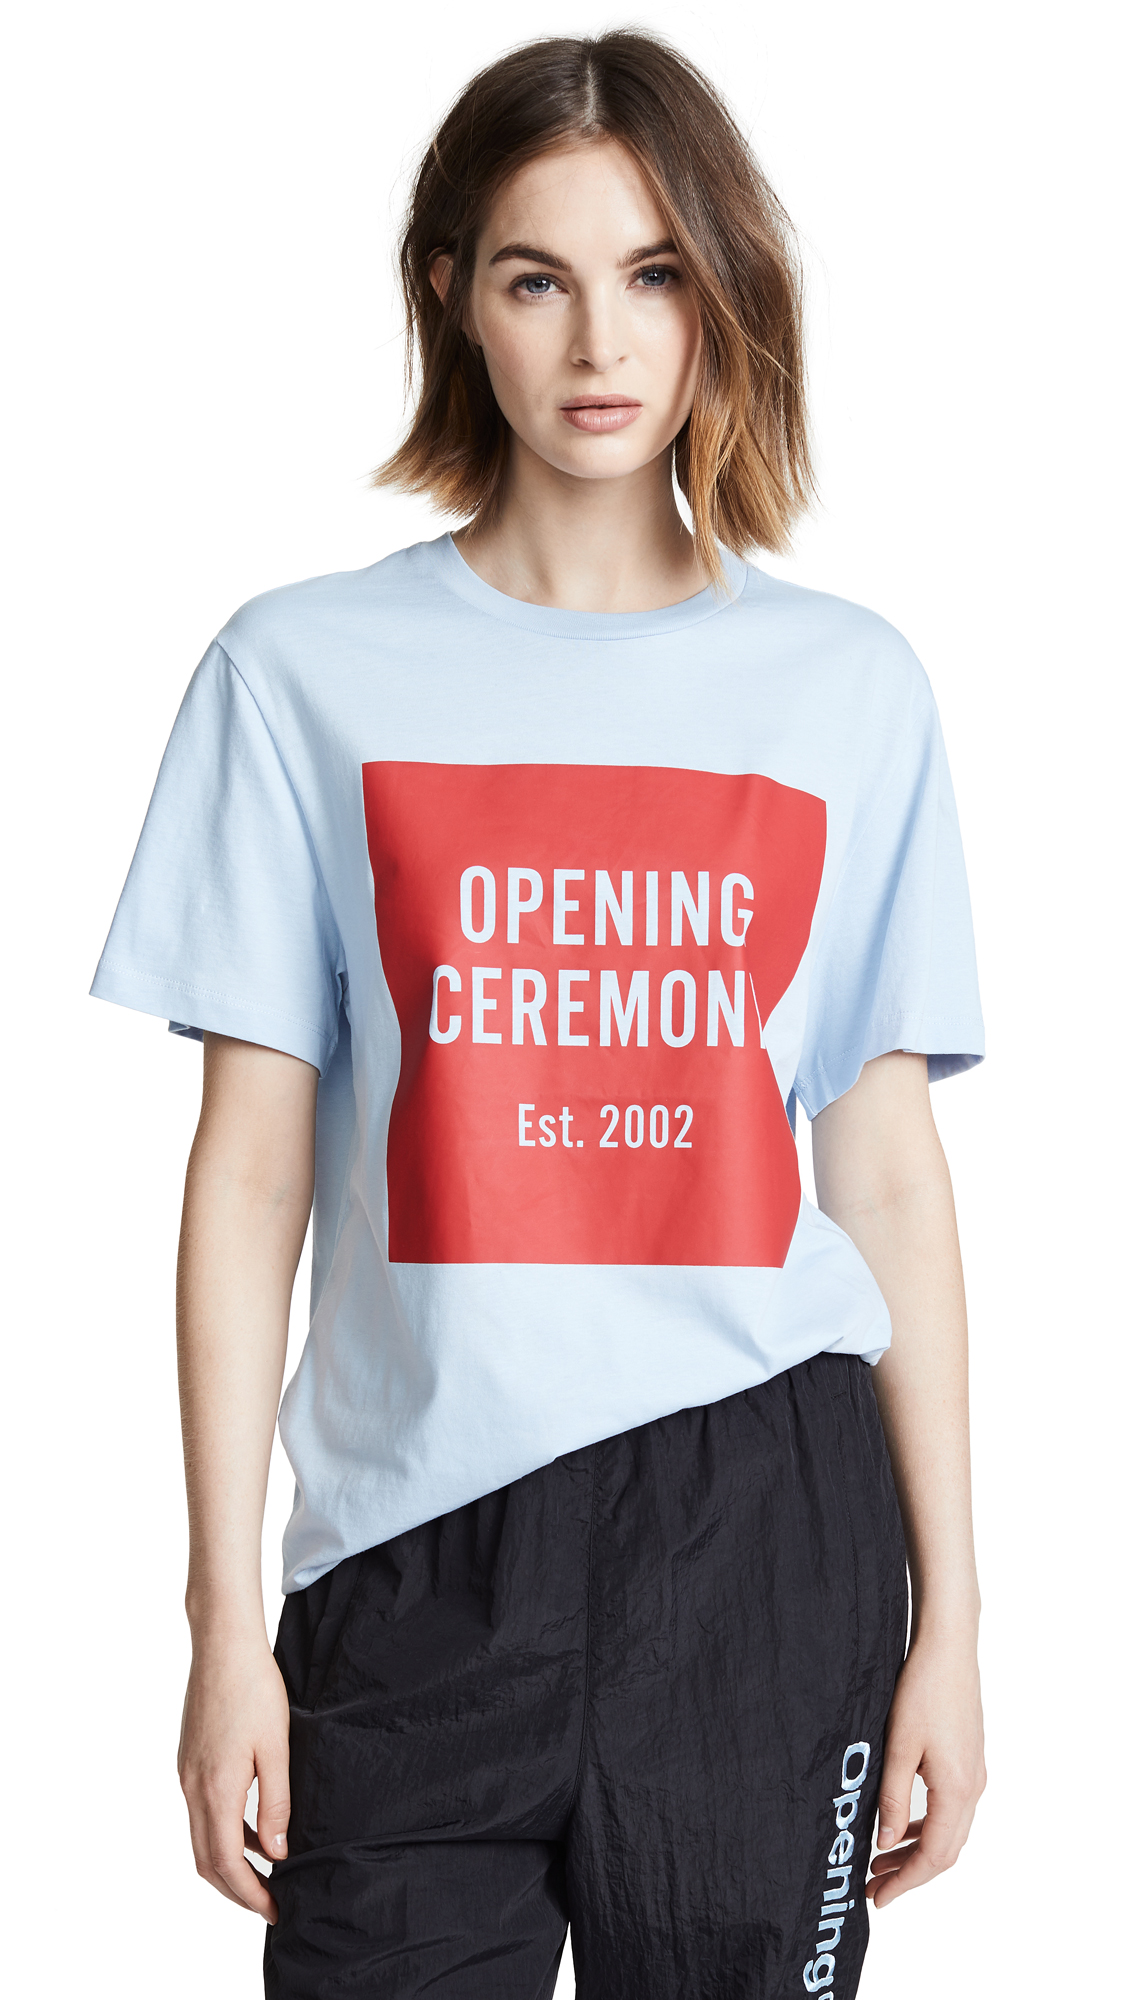 OPENING CEREMONY Printed Cotton-Jersey T-Shirt, Postal Blue